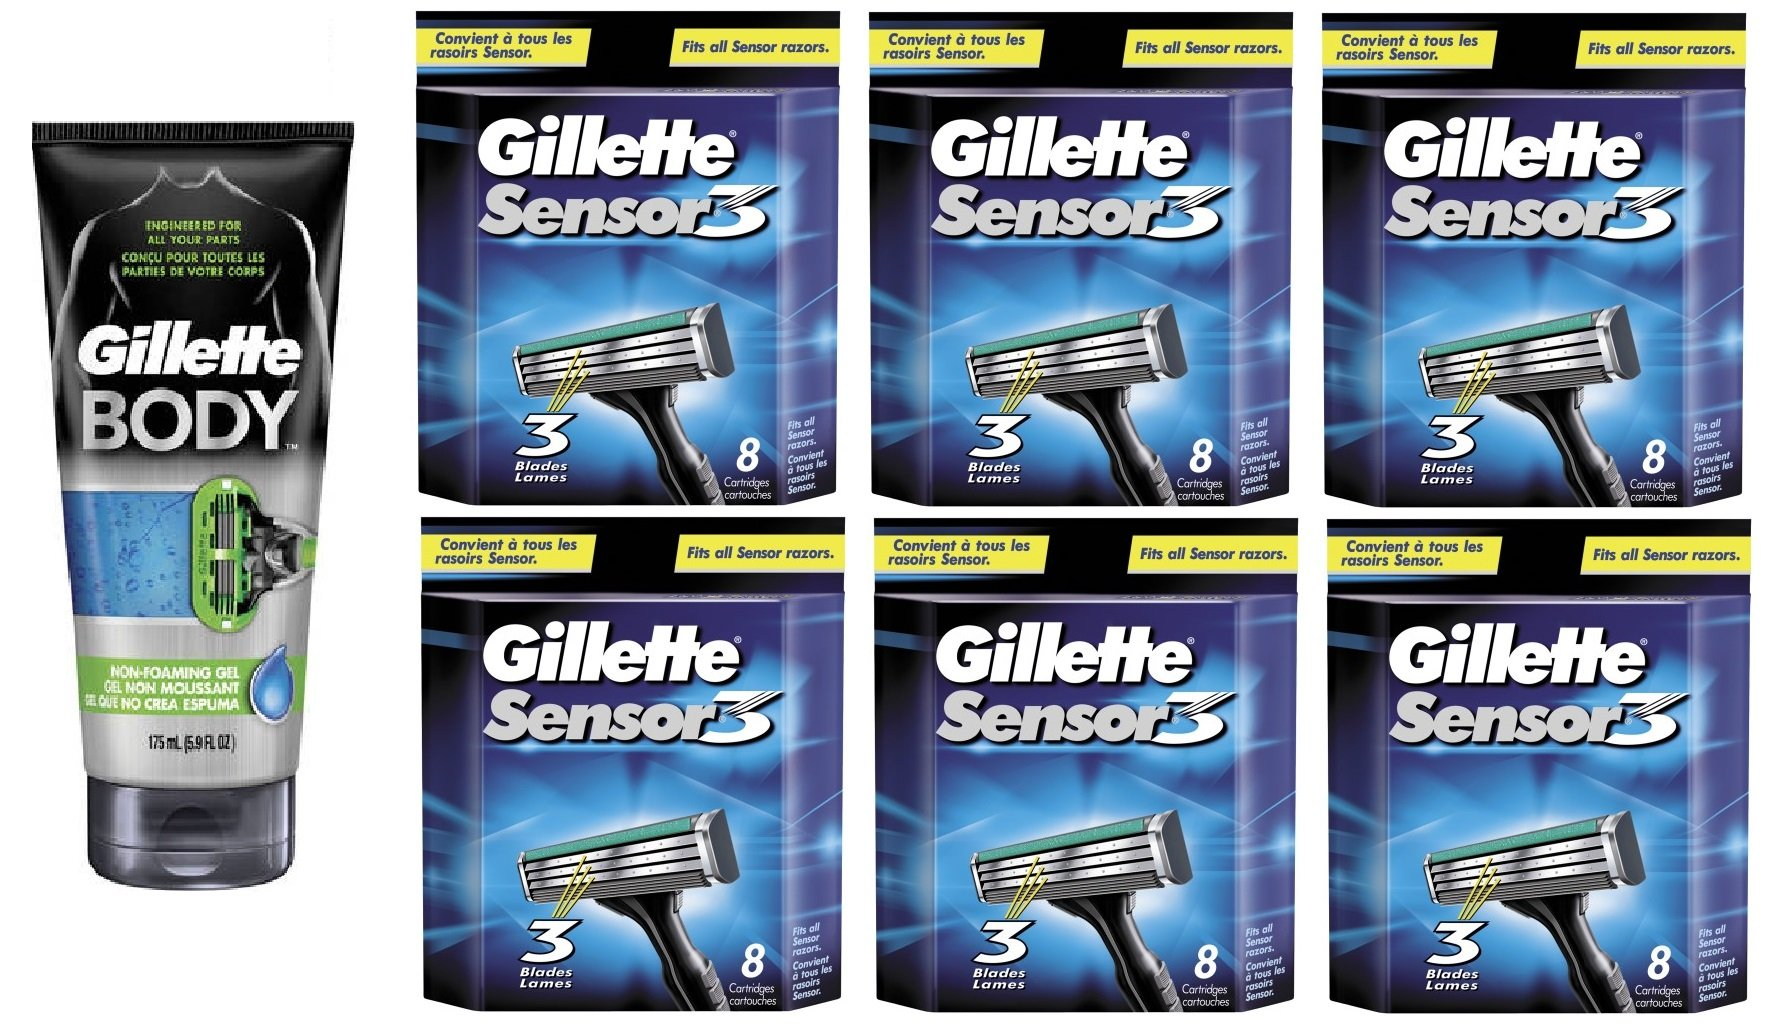 Gillette Body Non Foaming Shave Gel for Men, 5.9 Fl Oz + Sensor3 Refill Blades 8 Ct. (6 Pack) + FREE Luxury Luffa Loofah Bath Sponge On A Rope, Color May Vary